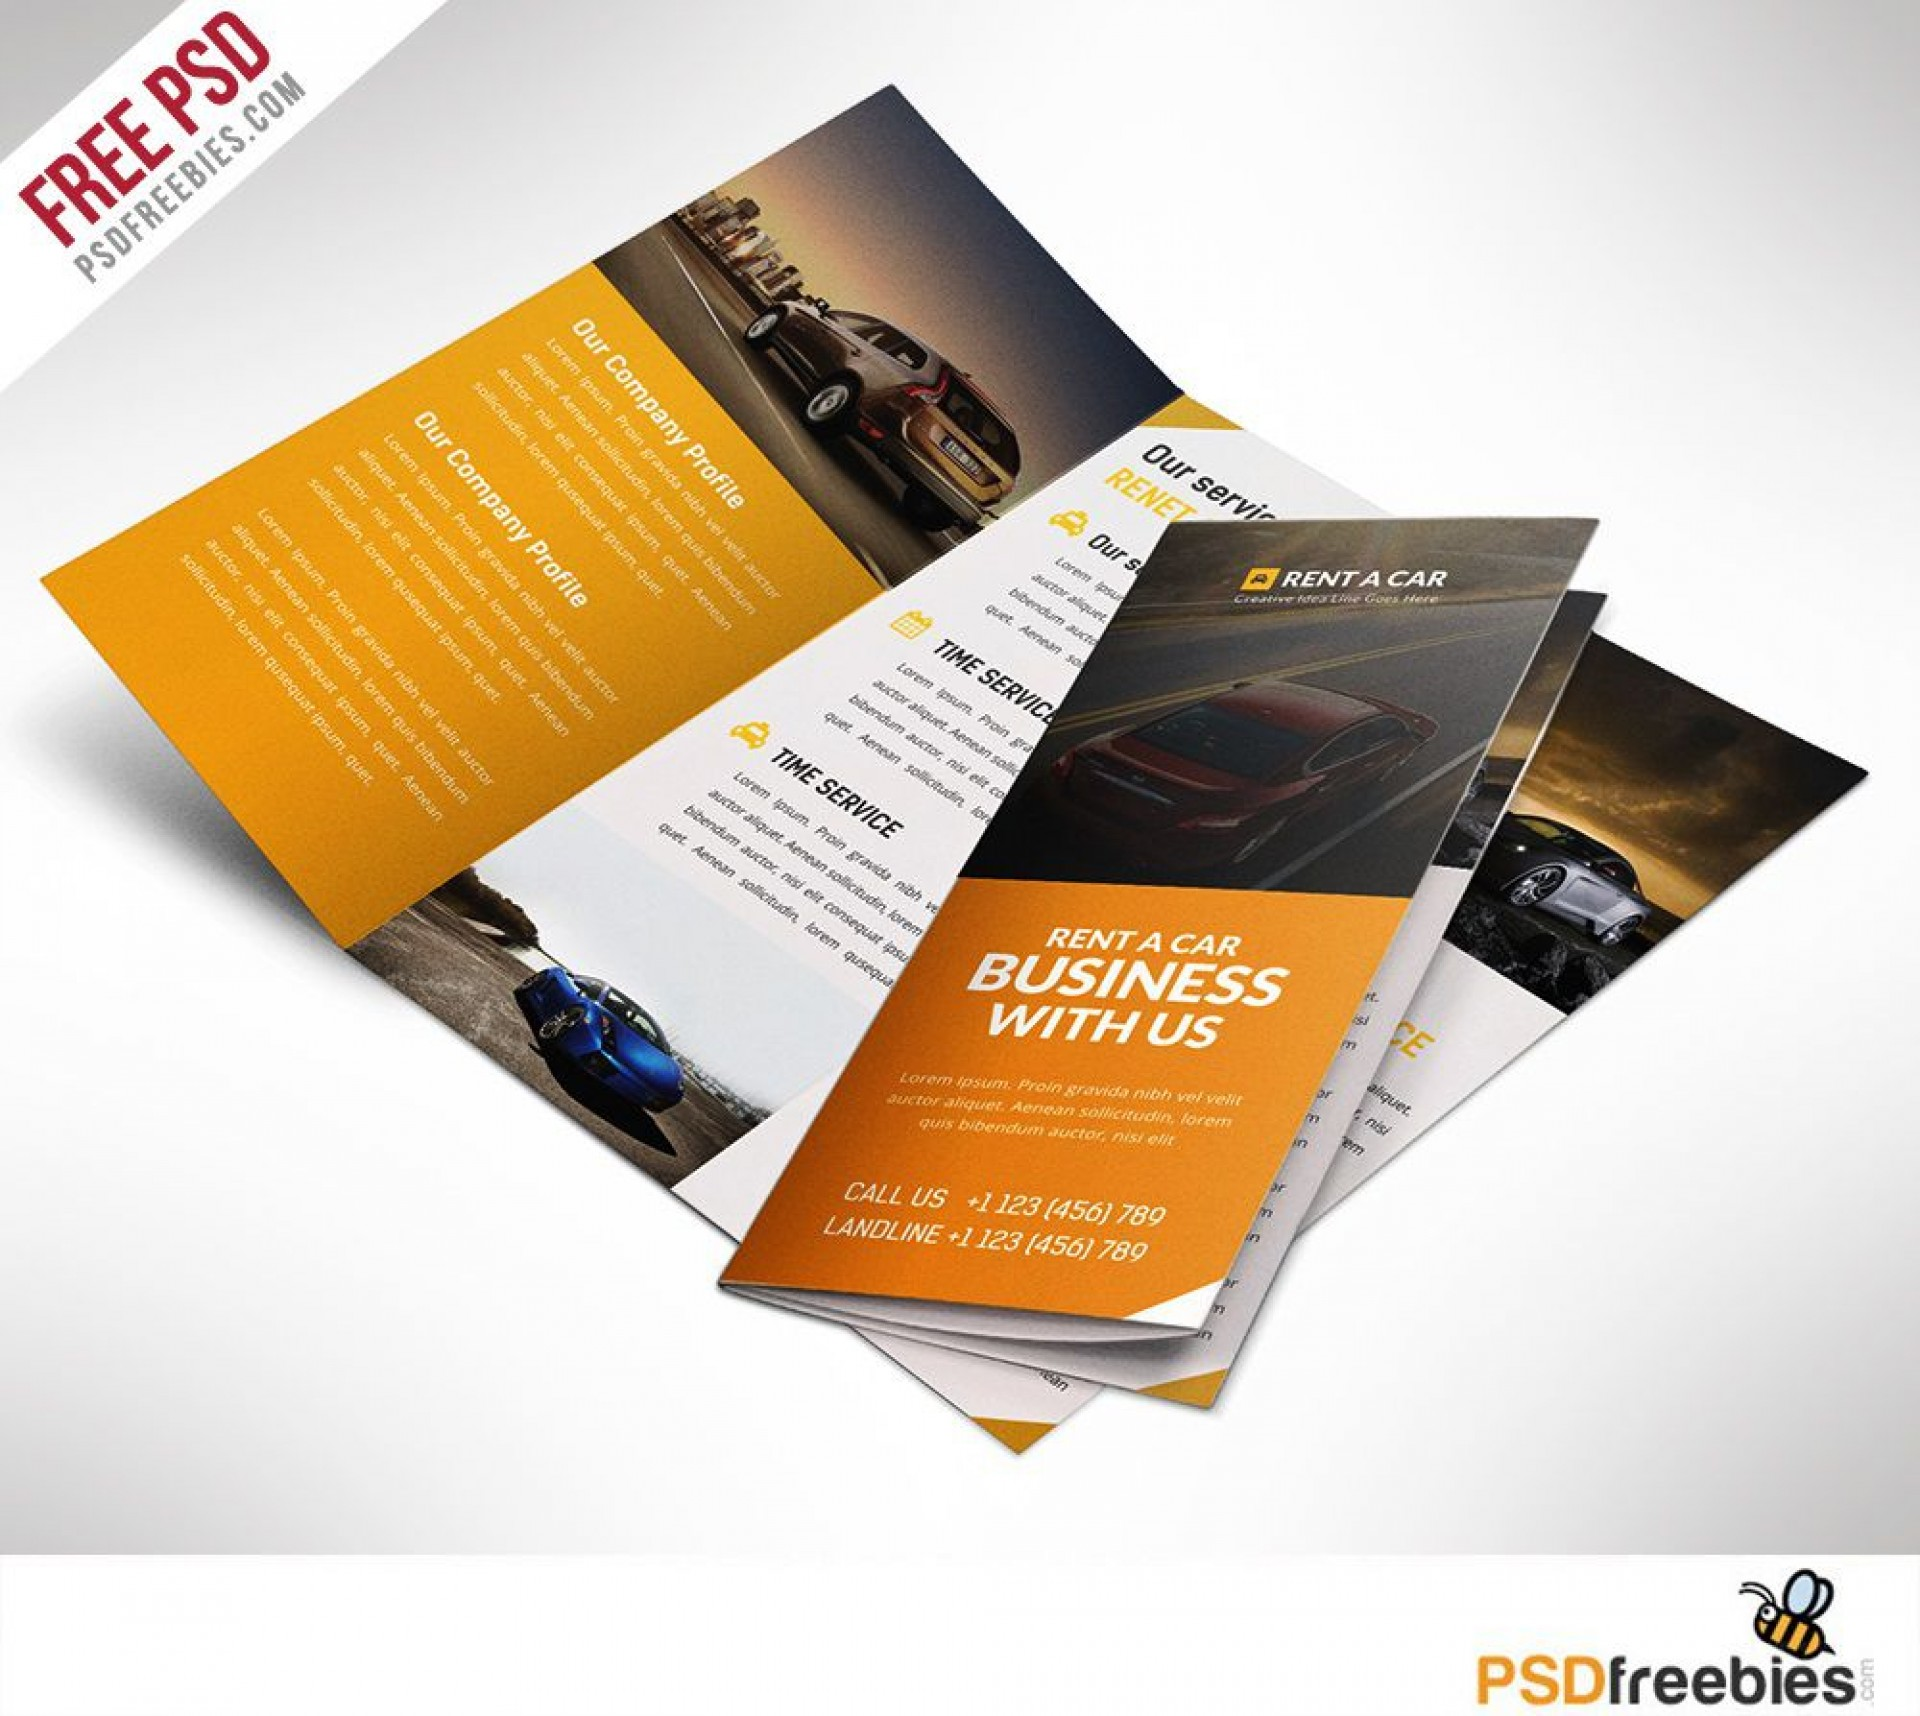 002 Unbelievable Photoshop Brochure Template Psd Free Download Inspiration 1920